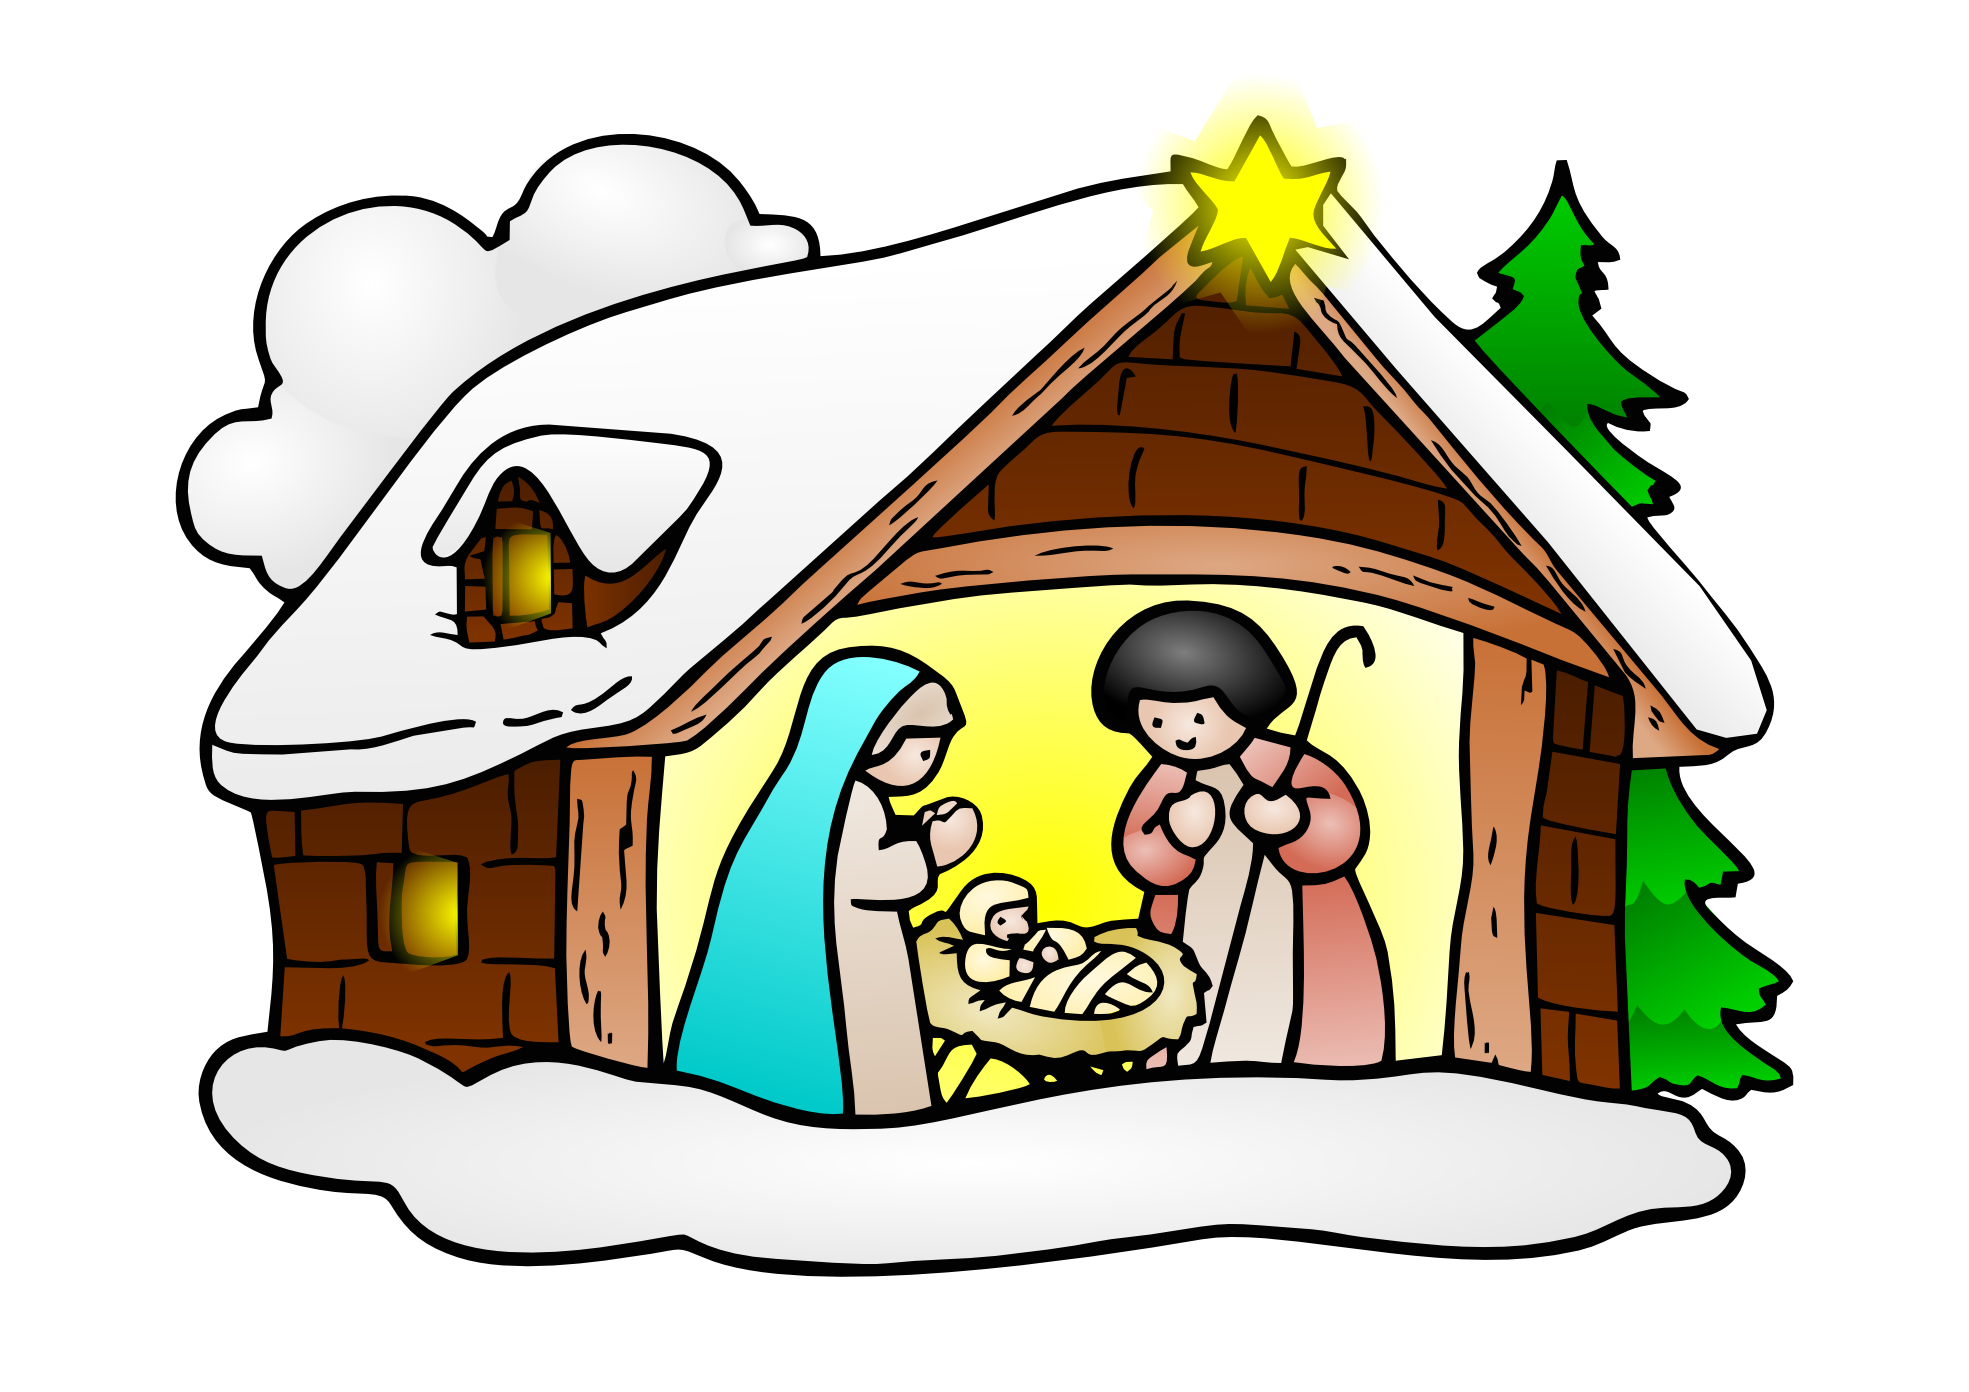 1969x1392 Merry Christmas Jesus Clipart – Merry Christmas And Happy New Year